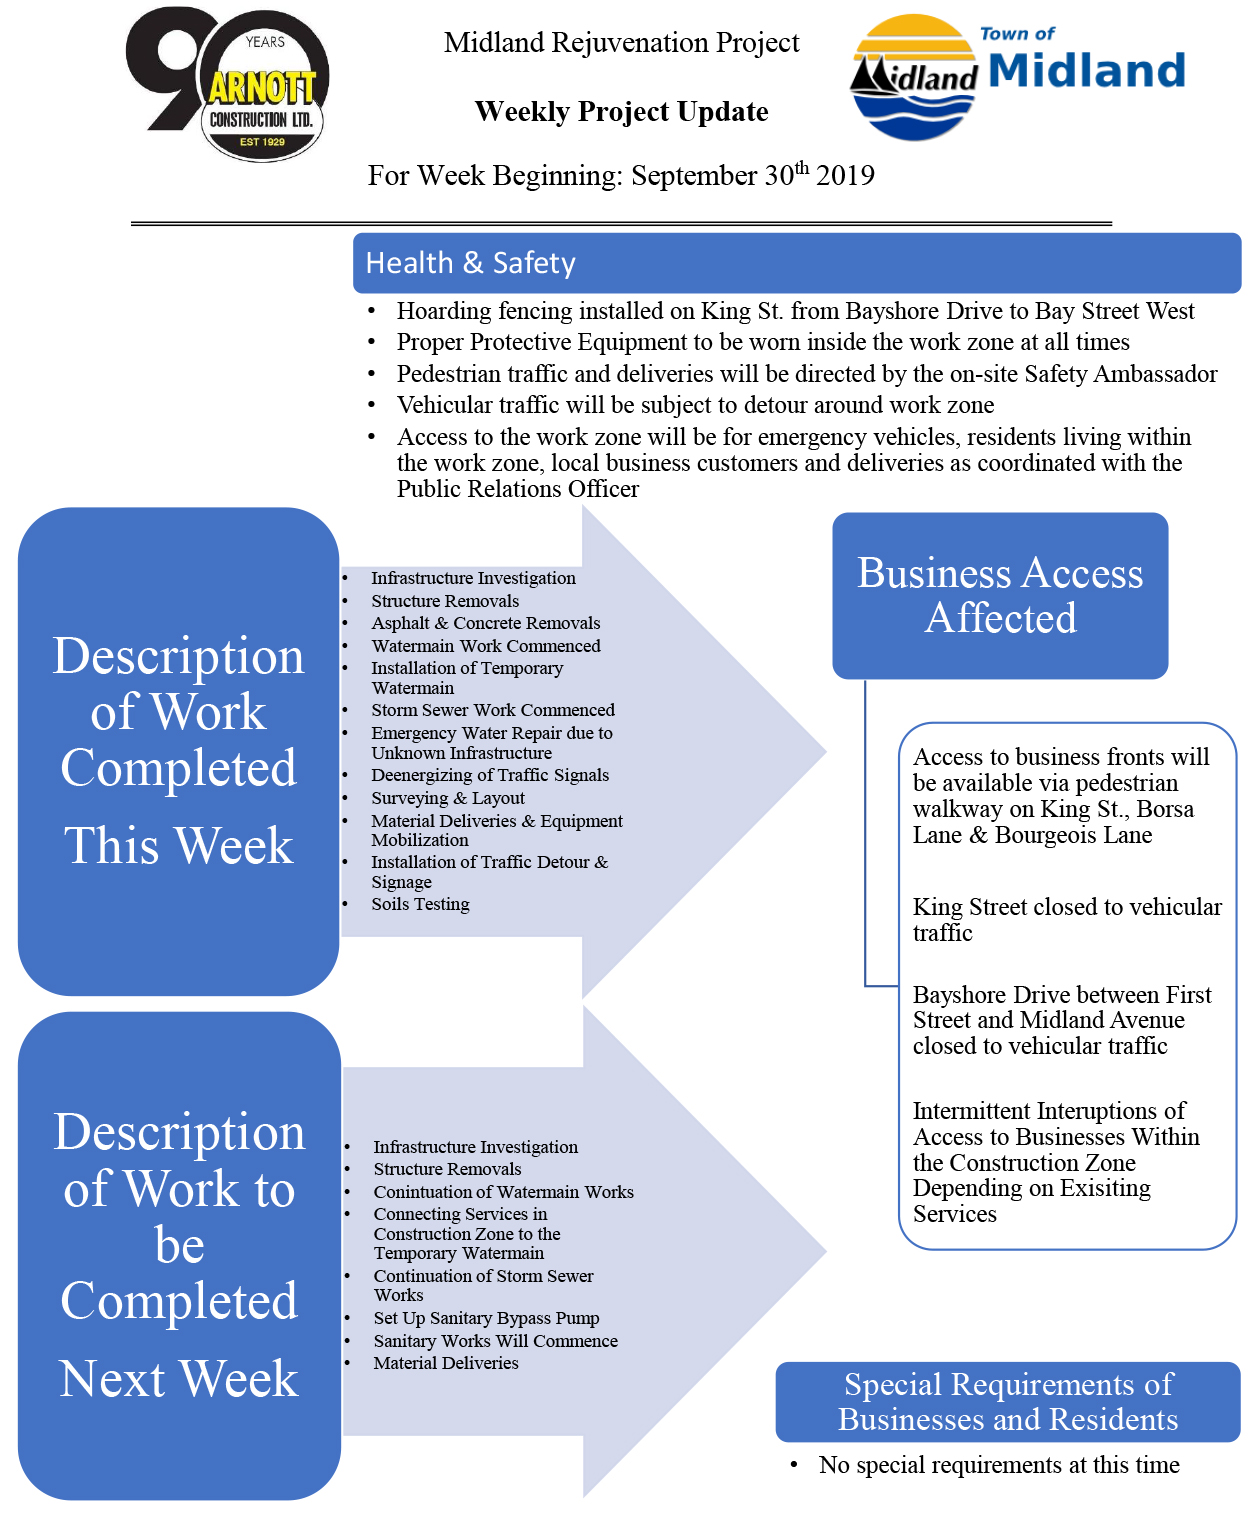 Business disruption and mitigation plan 2018 015    week of september 30